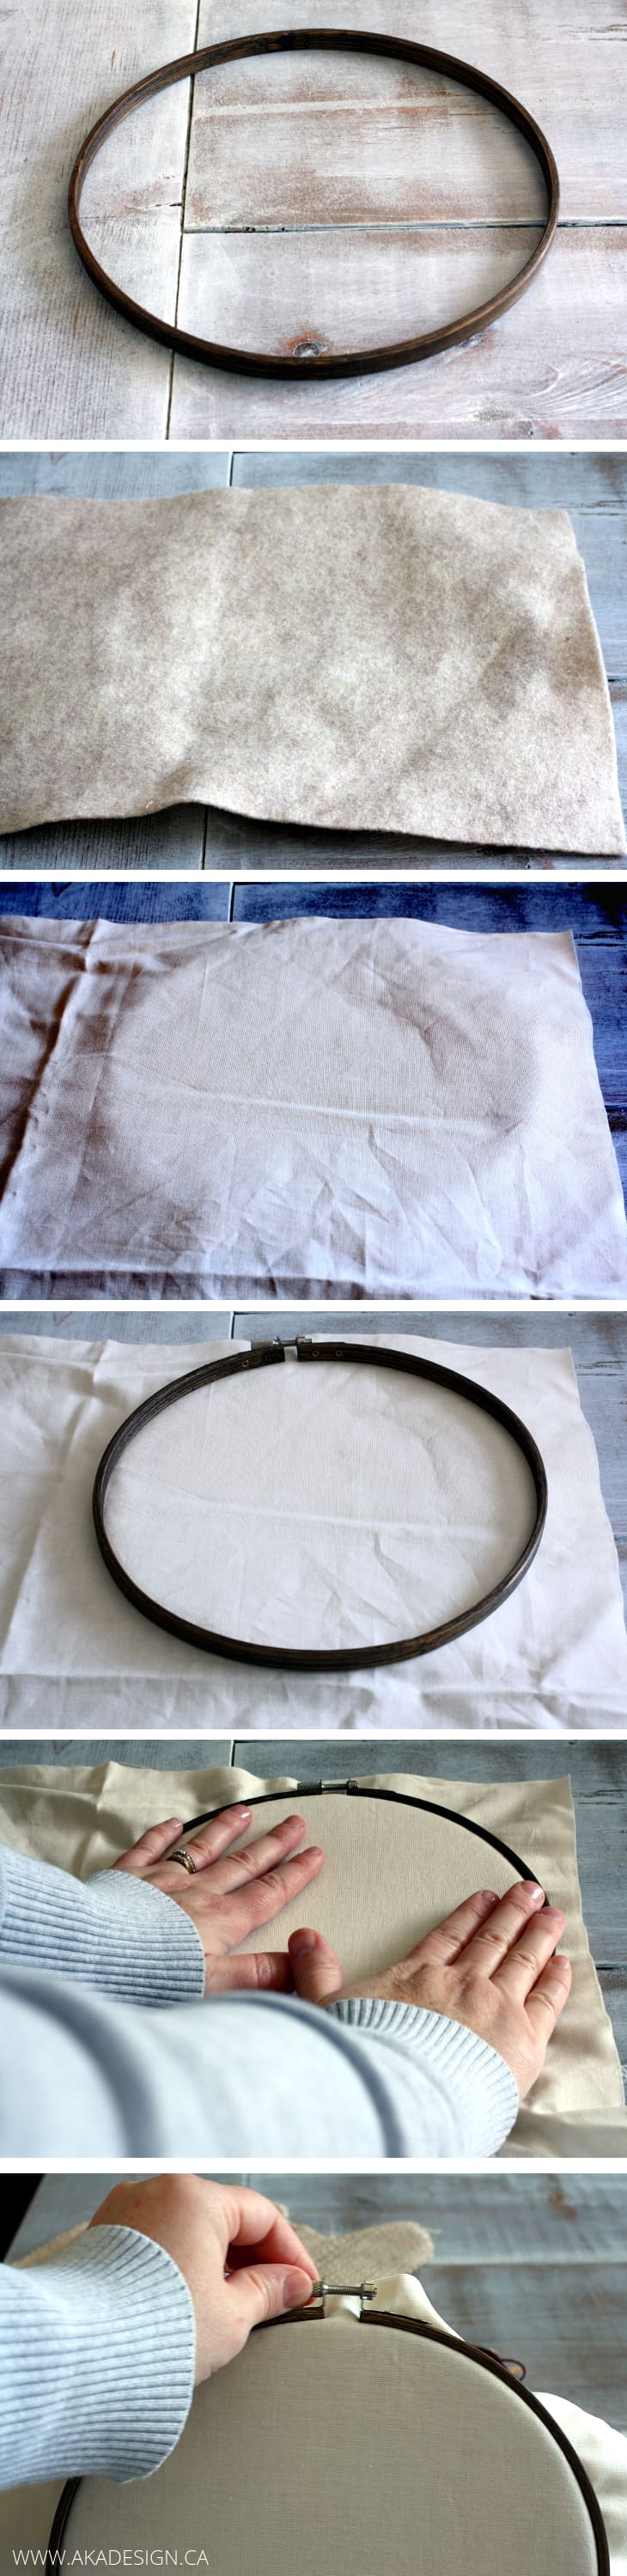 embroidery hoop assembly